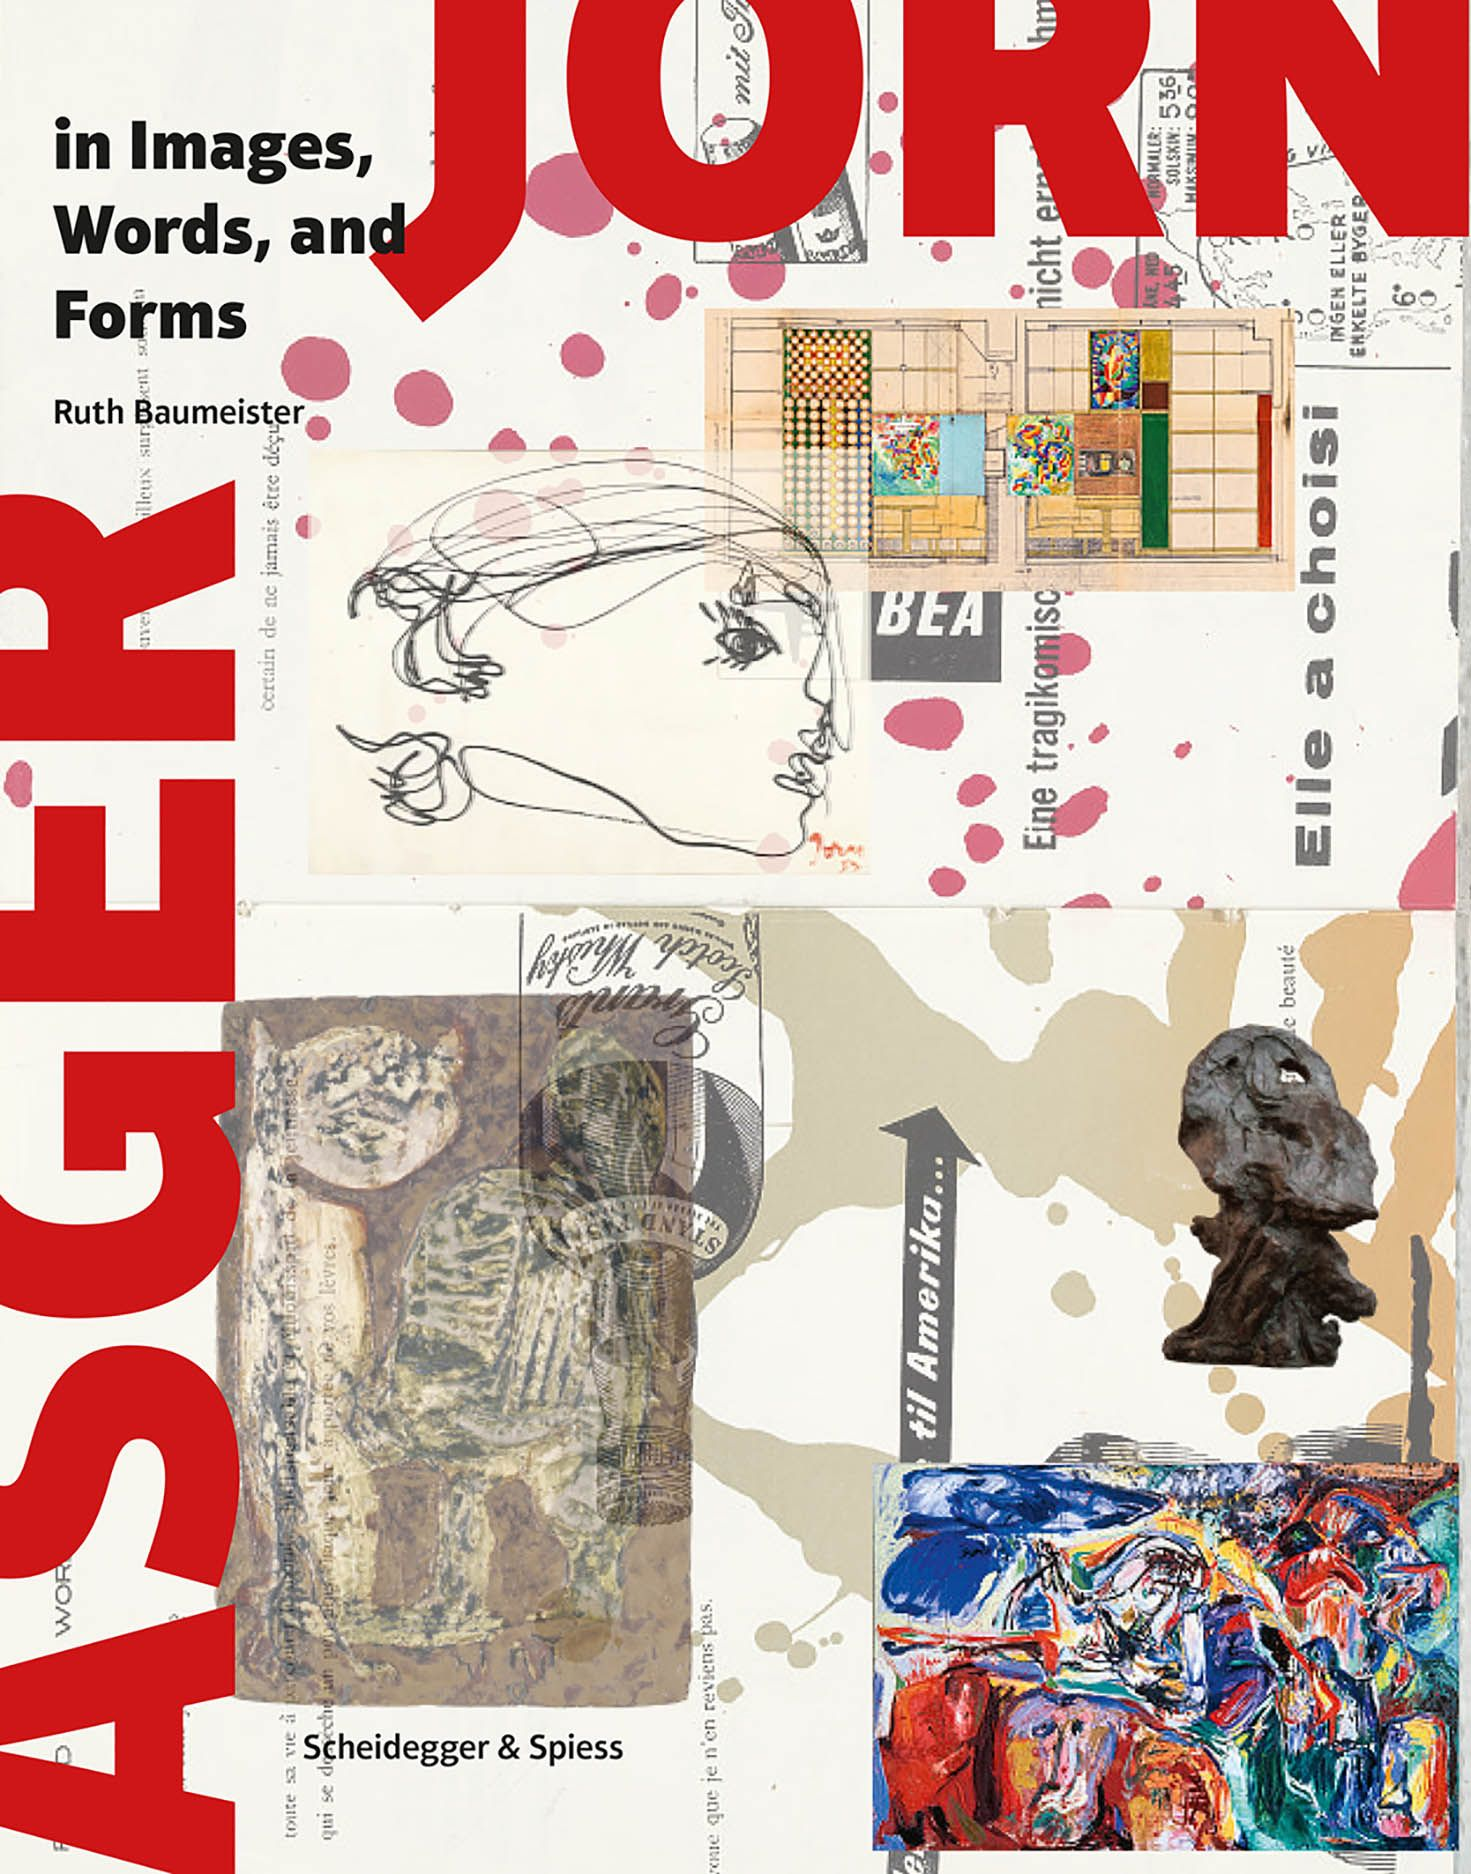 Asger Jorn in Images, Words and Forms